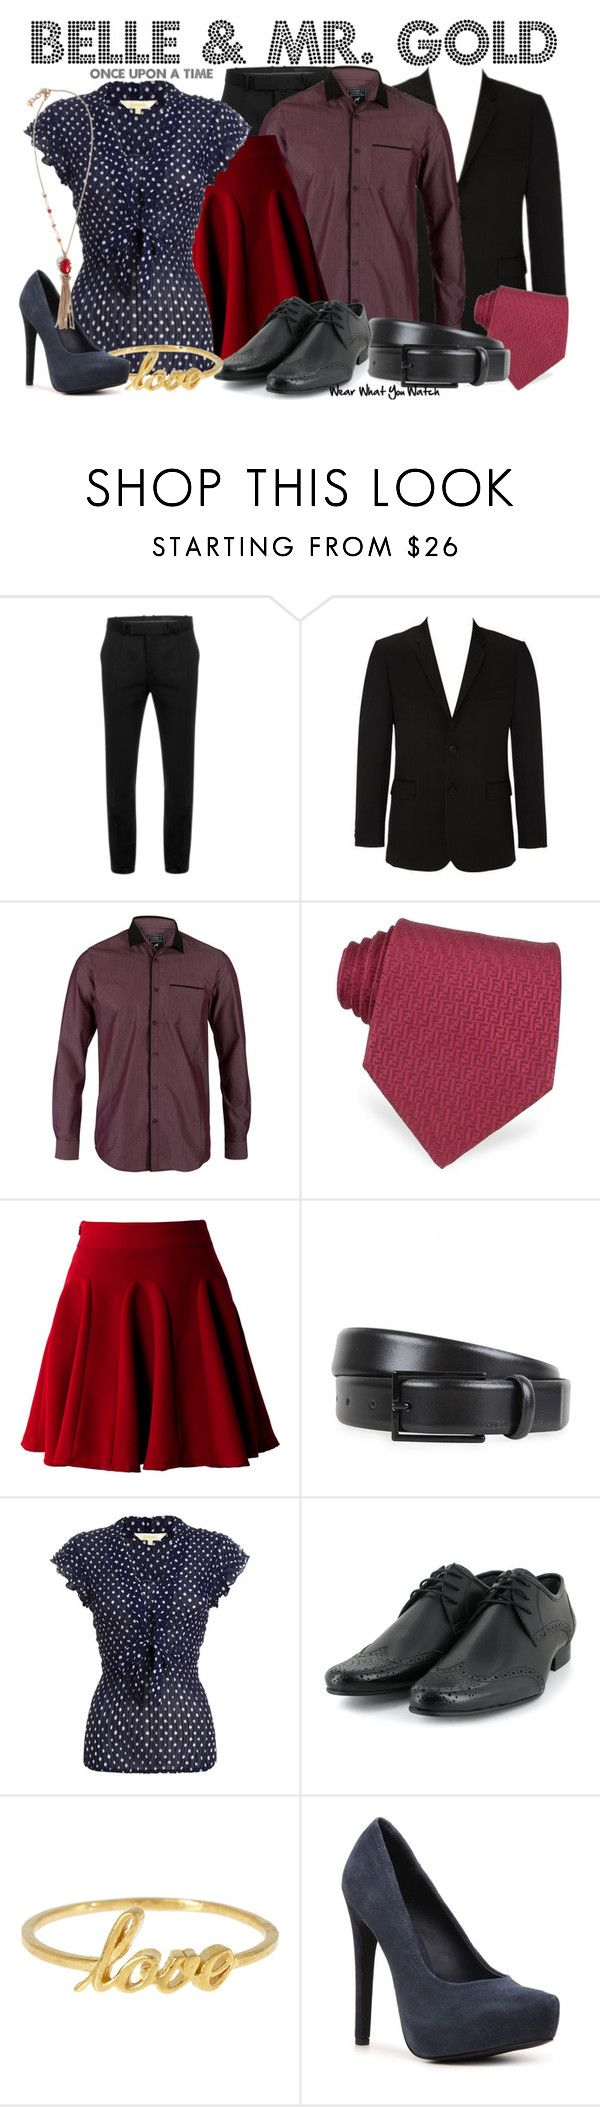 """""""Once Upon a Time"""" by wearwhatyouwatch ❤ liked on Polyvore featuring Alexander McQueen, Fendi, HUGO, John Lewis, Vegetarian Shoes, Alex Monroe, Kelsi Dagger Brooklyn, Lucky Brand, ruffle blouses and polka dots"""